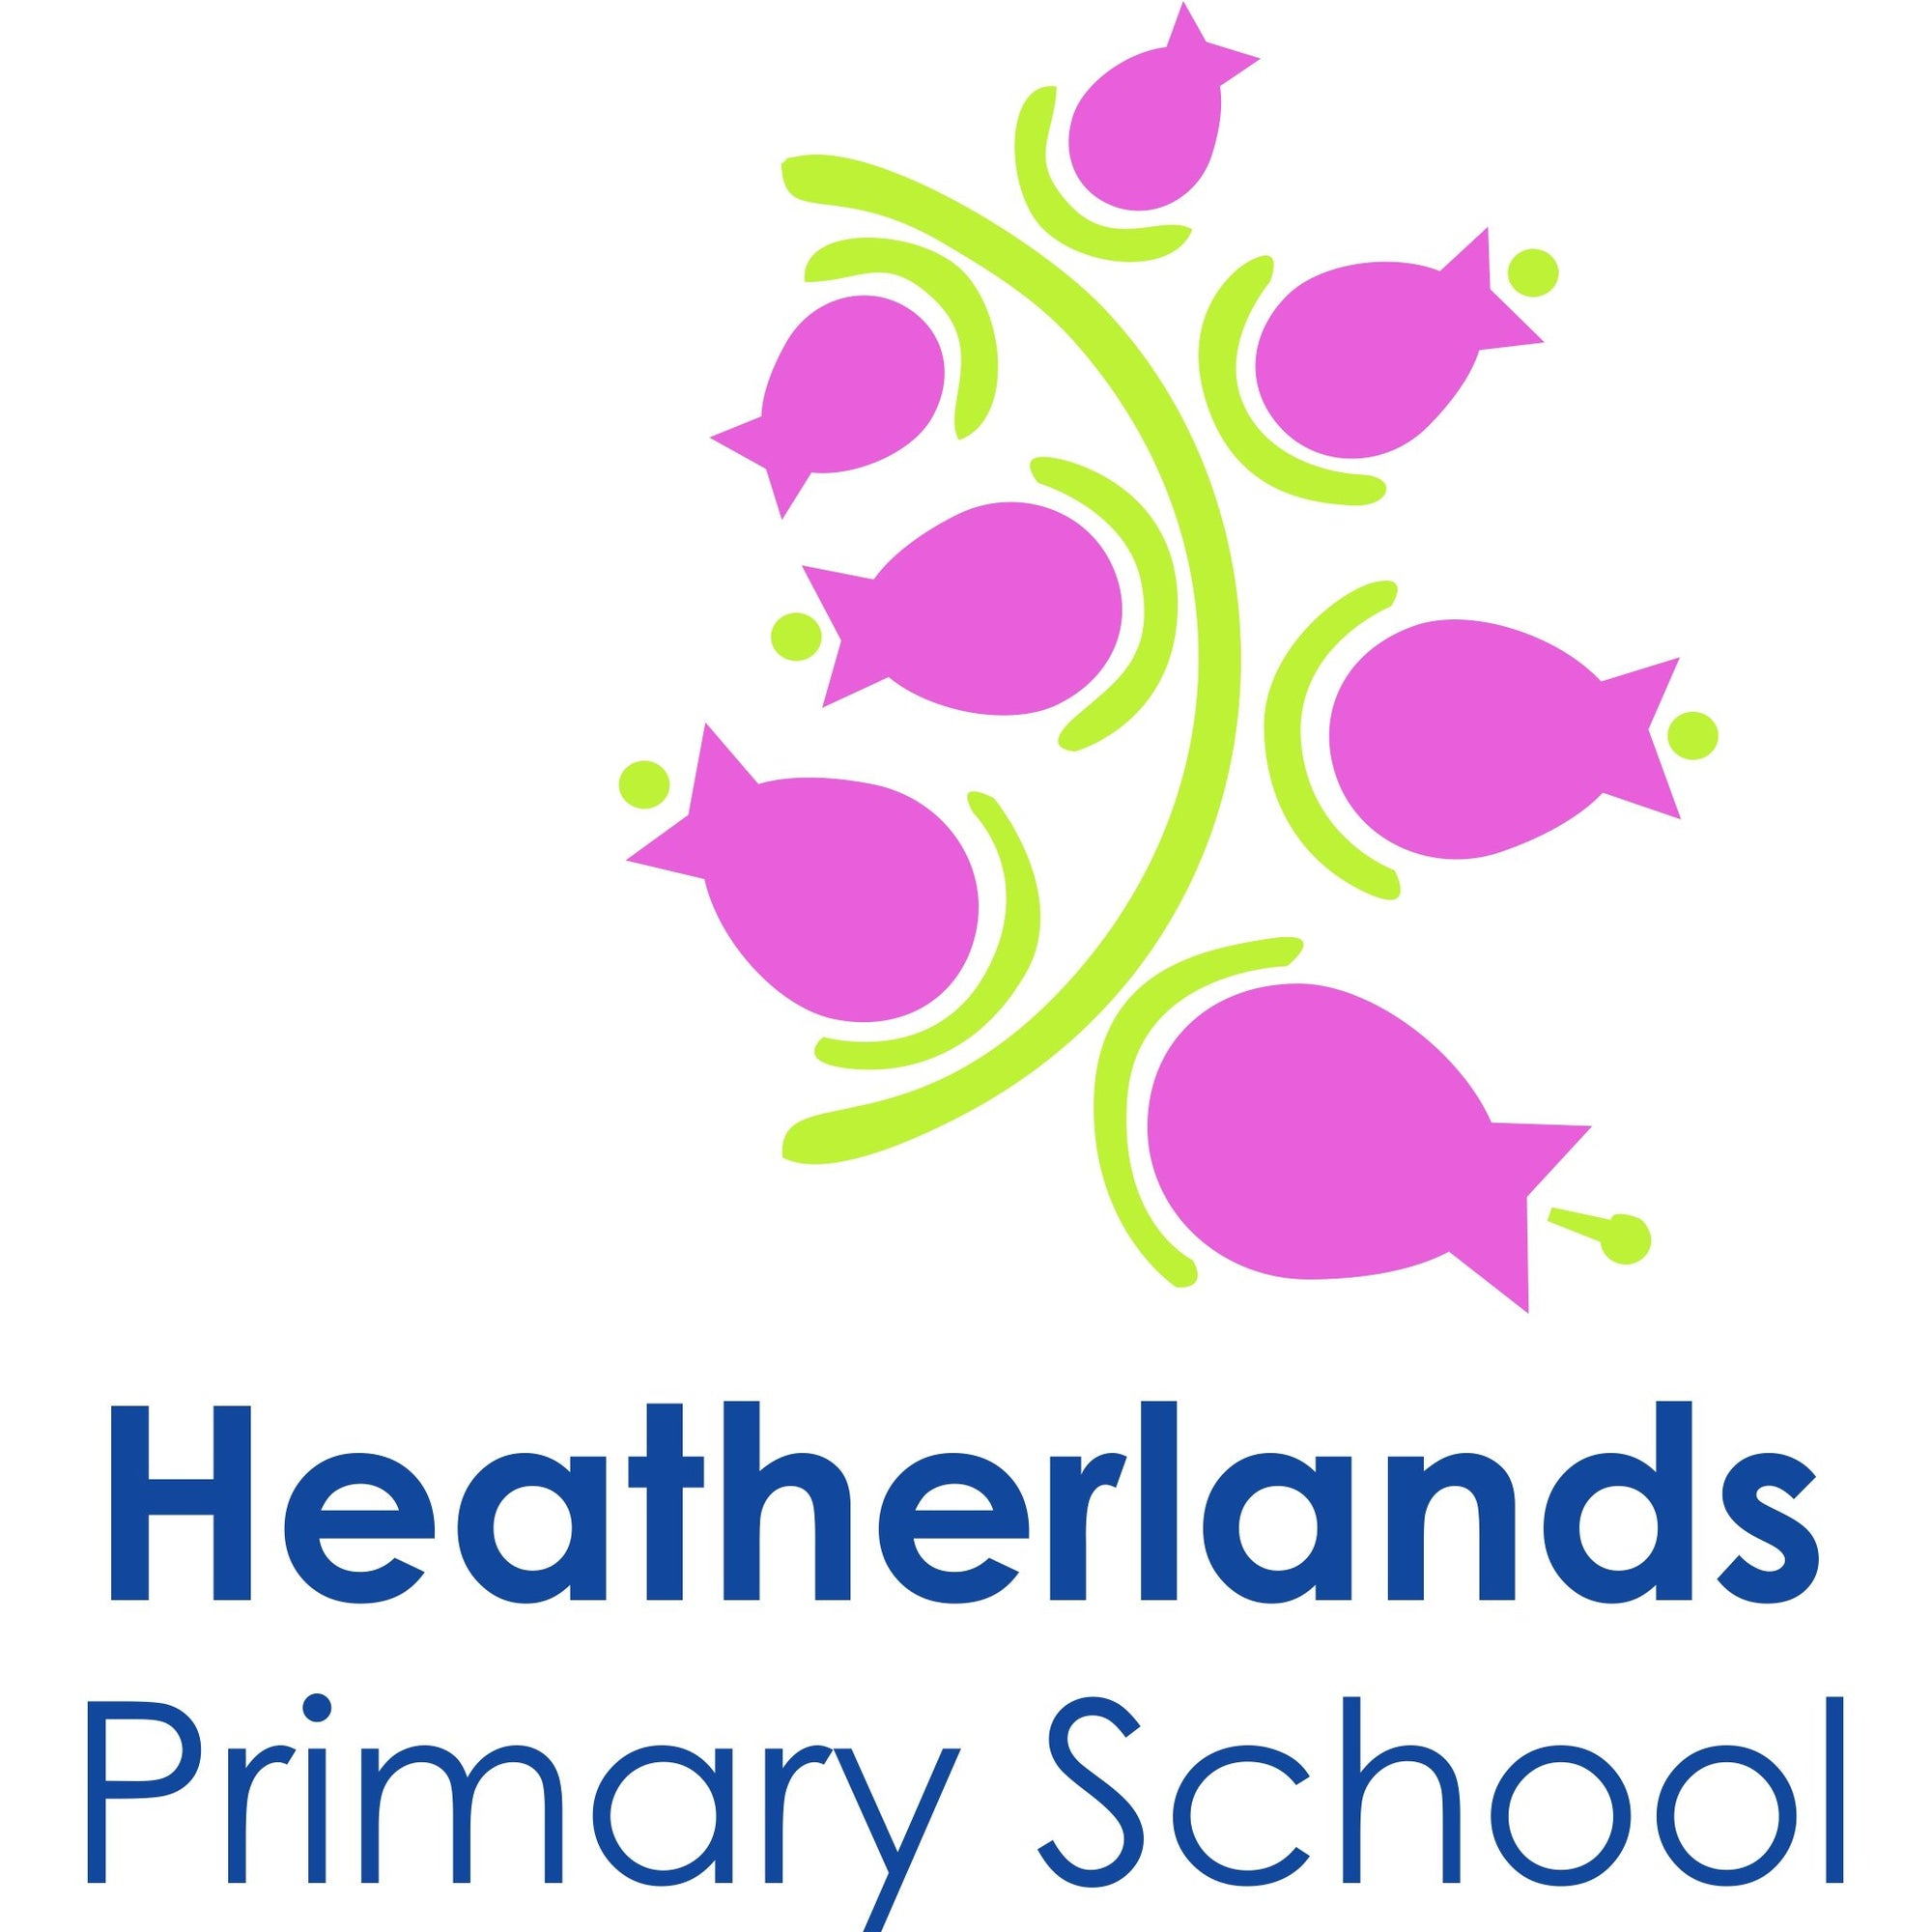 Heatherlands Primary School